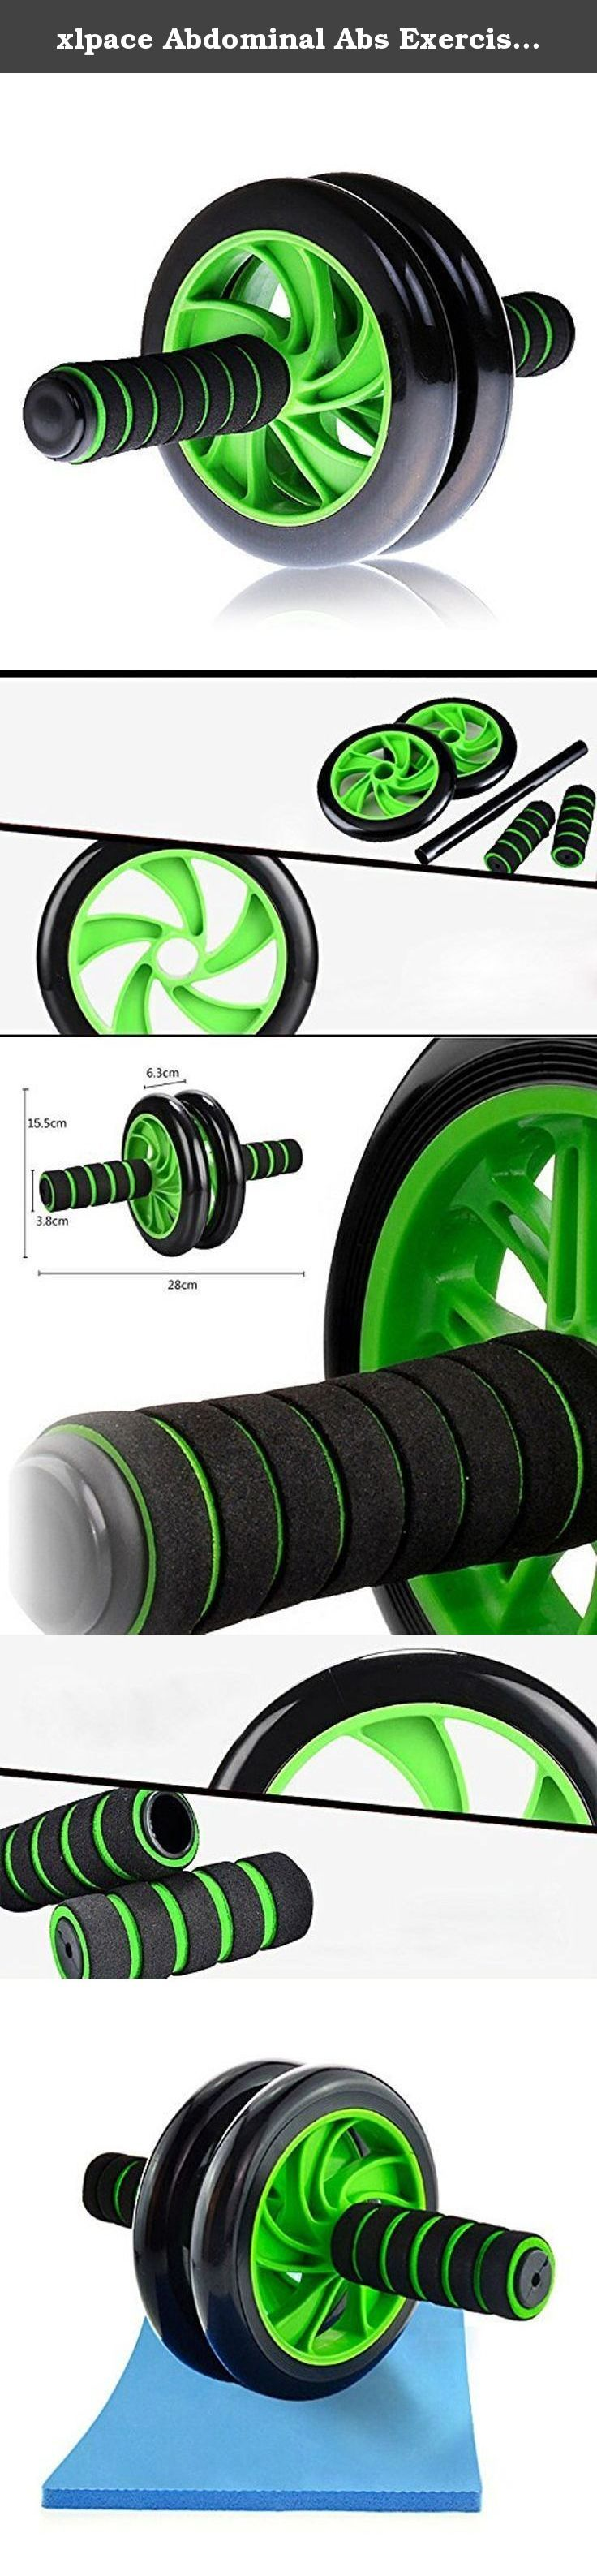 xlpace Abdominal Abs Exercise Wheel Fitness Body Gym Strength Training Roller Machine. Feature: This non-slip wheels, a compact outline and molded hold handles ThisWheel is a simple to-utilize exercise Great for adding muscle in the chest, shoulders, back and arms Ab toner has two non-skid wheels for extra stability Easy-grip handles Fits all fitness levels Defines core muscles Lightweight, portable dual-wheel design increases stability The rubber hand grips ensure safety,comfort…